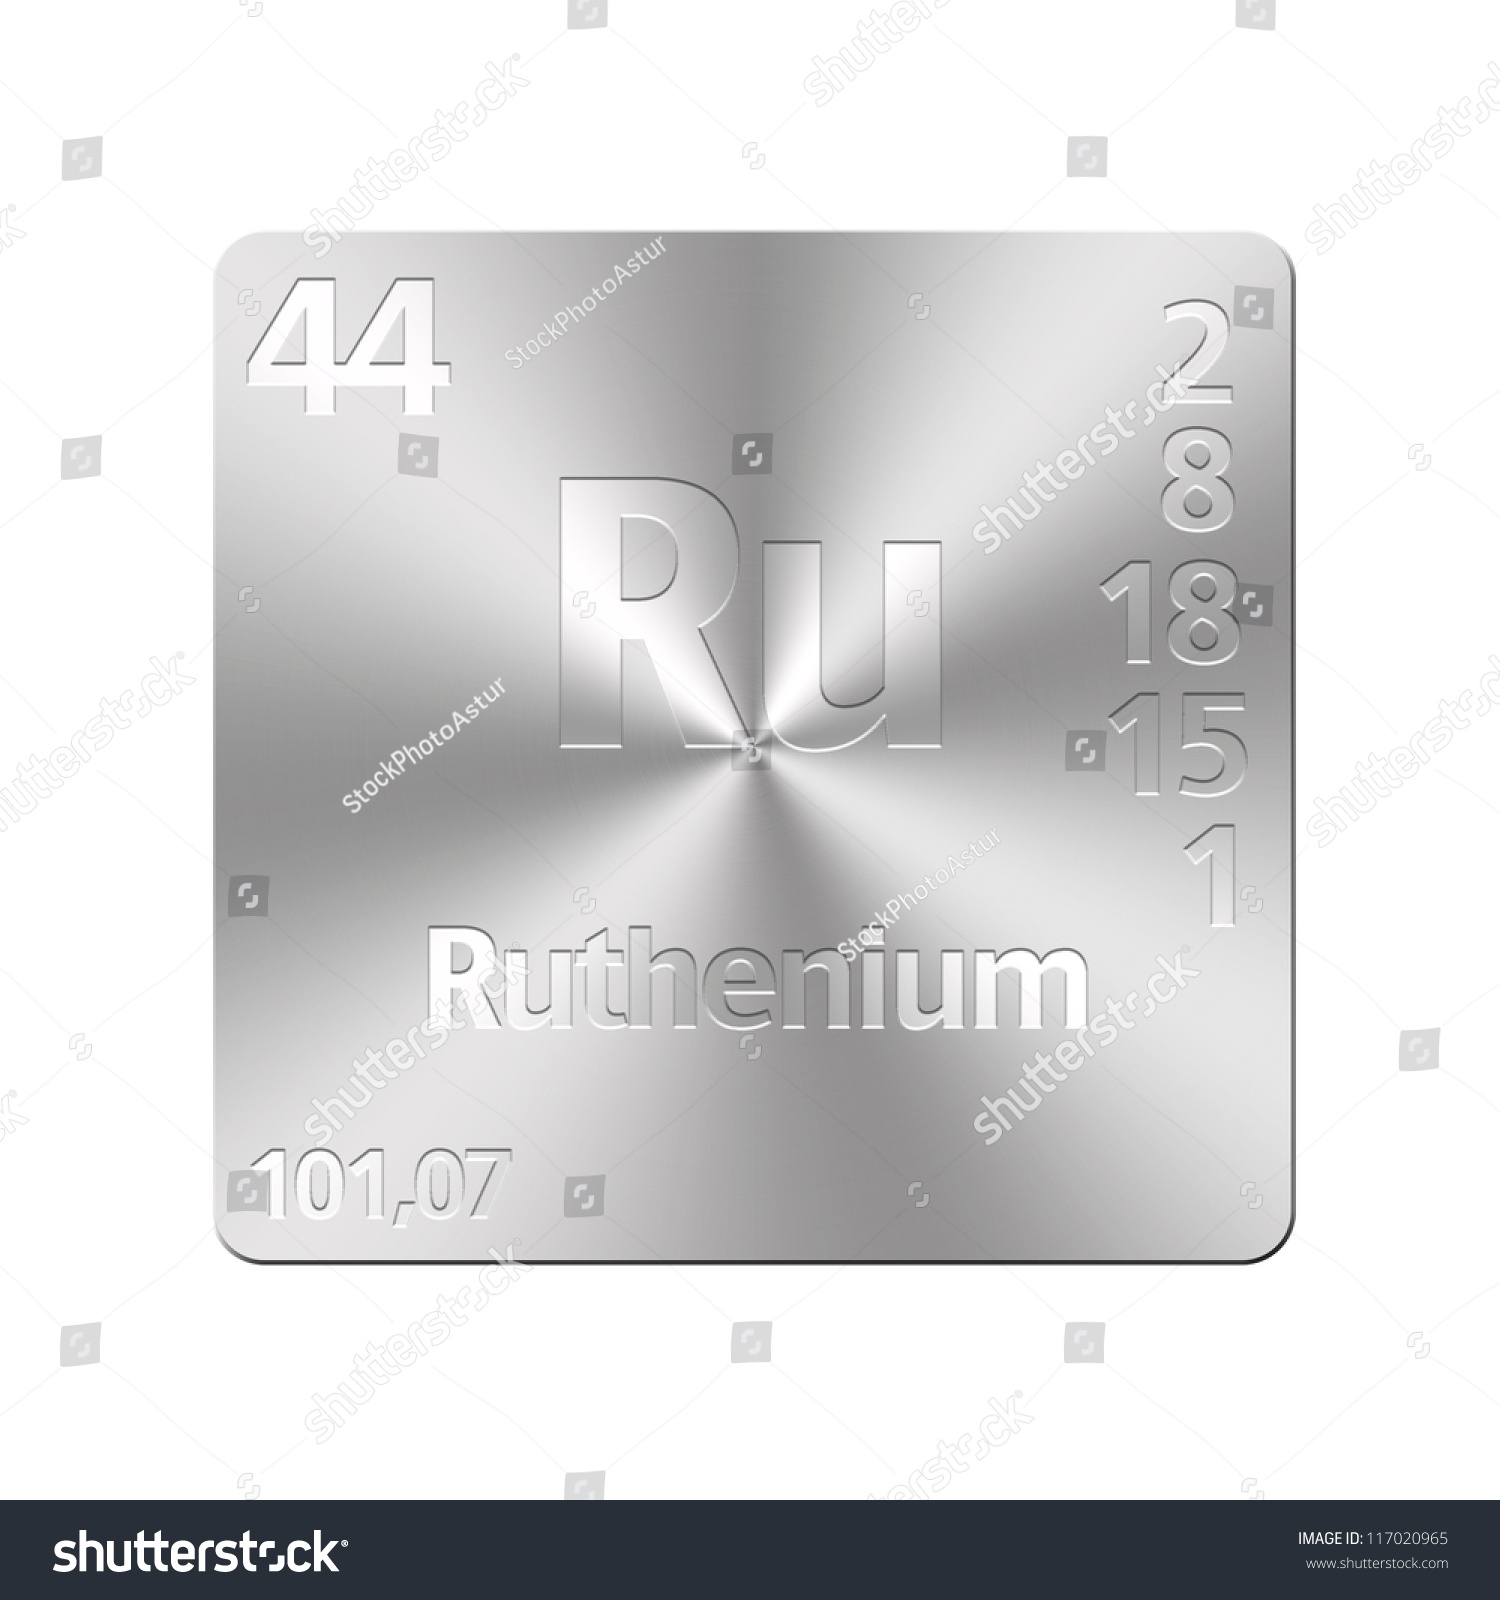 Isolated metal button periodic table ruthenium stock illustration isolated metal button with periodic table ruthenium gamestrikefo Choice Image